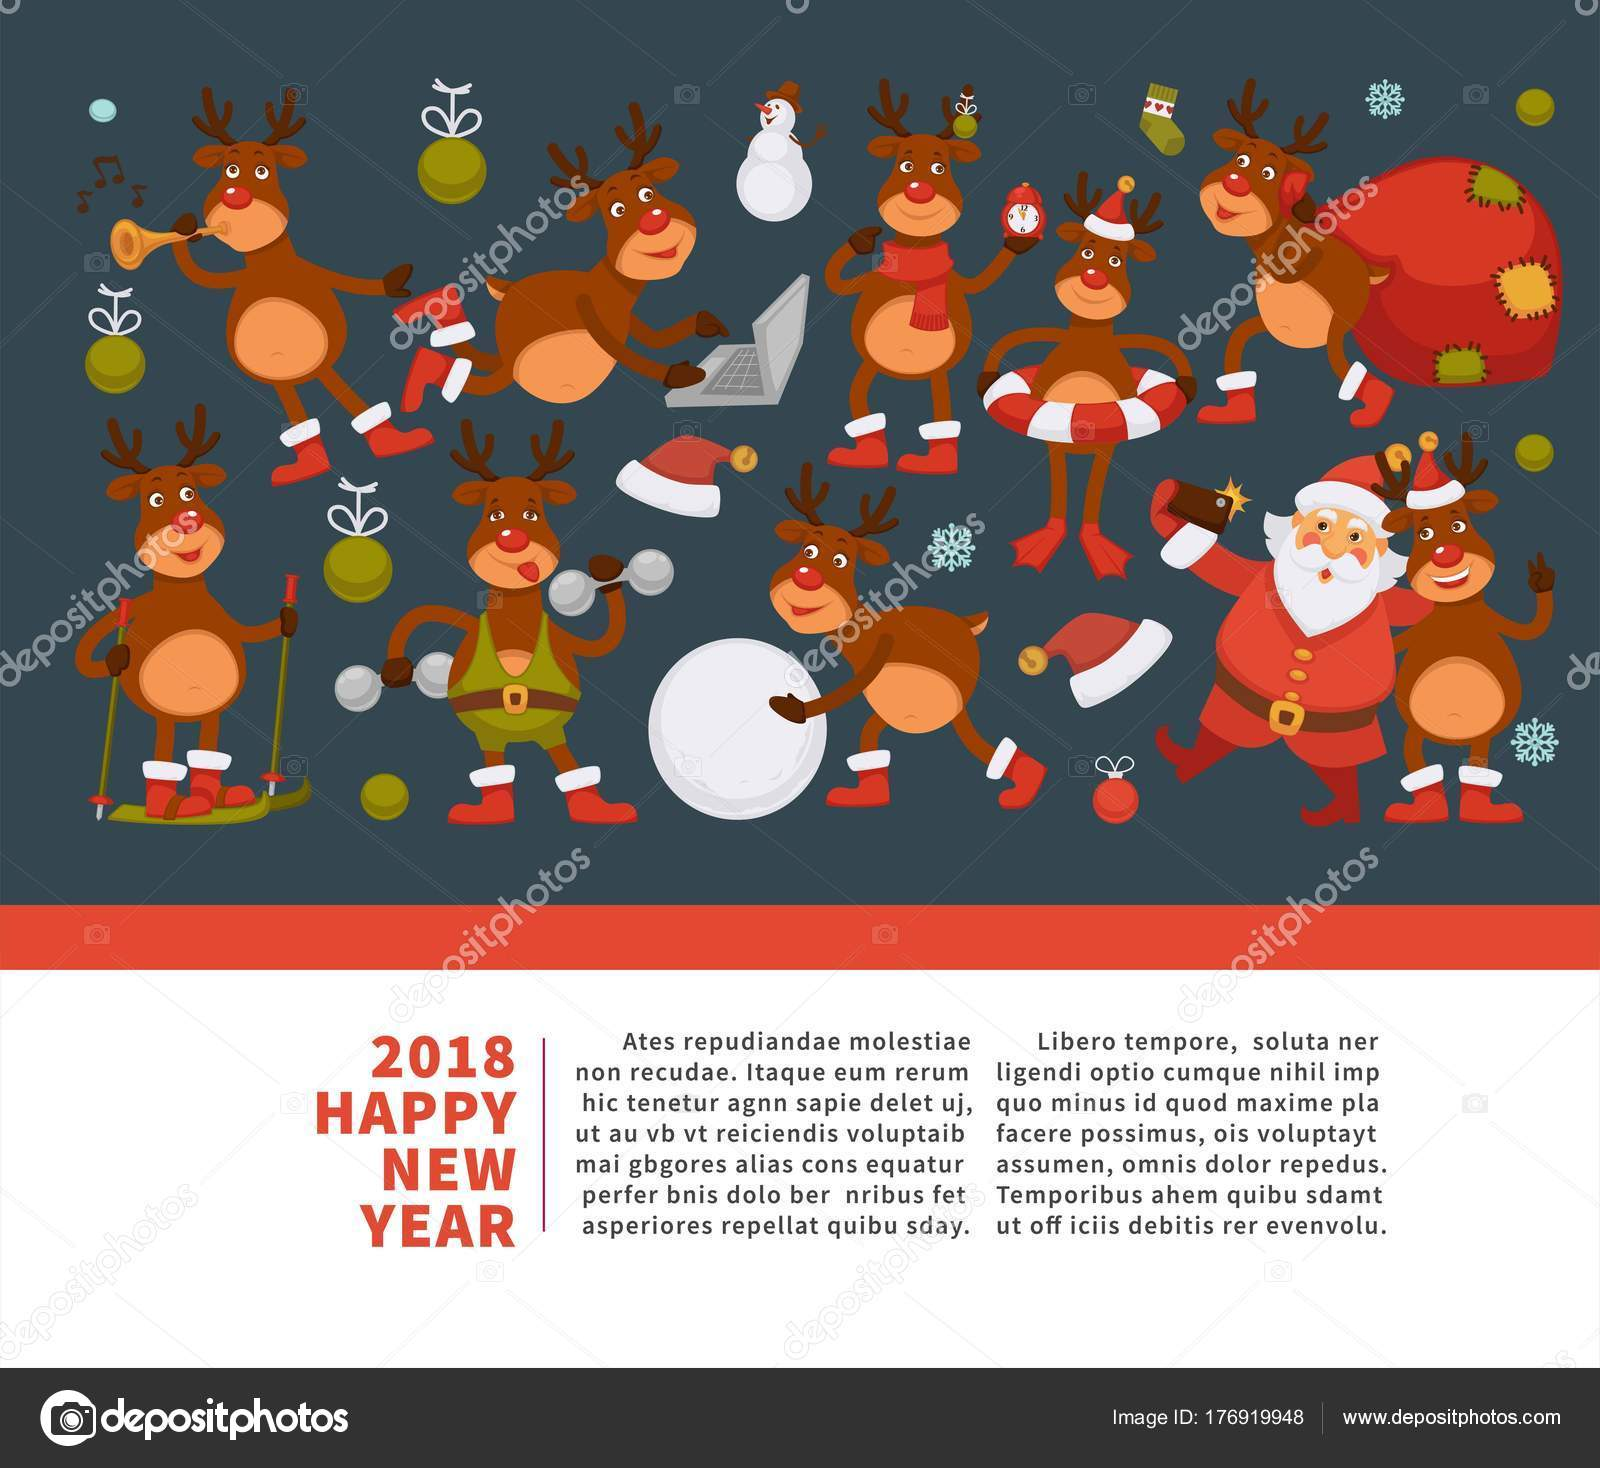 Wonderful Merry Christmas And Happy New Year 2018 Banner Of Deer Or Reindeer Cartoon  Funny Character Celebrating Holidays.Greeting Card Of Dog In Santa Hat With  Xmas ...